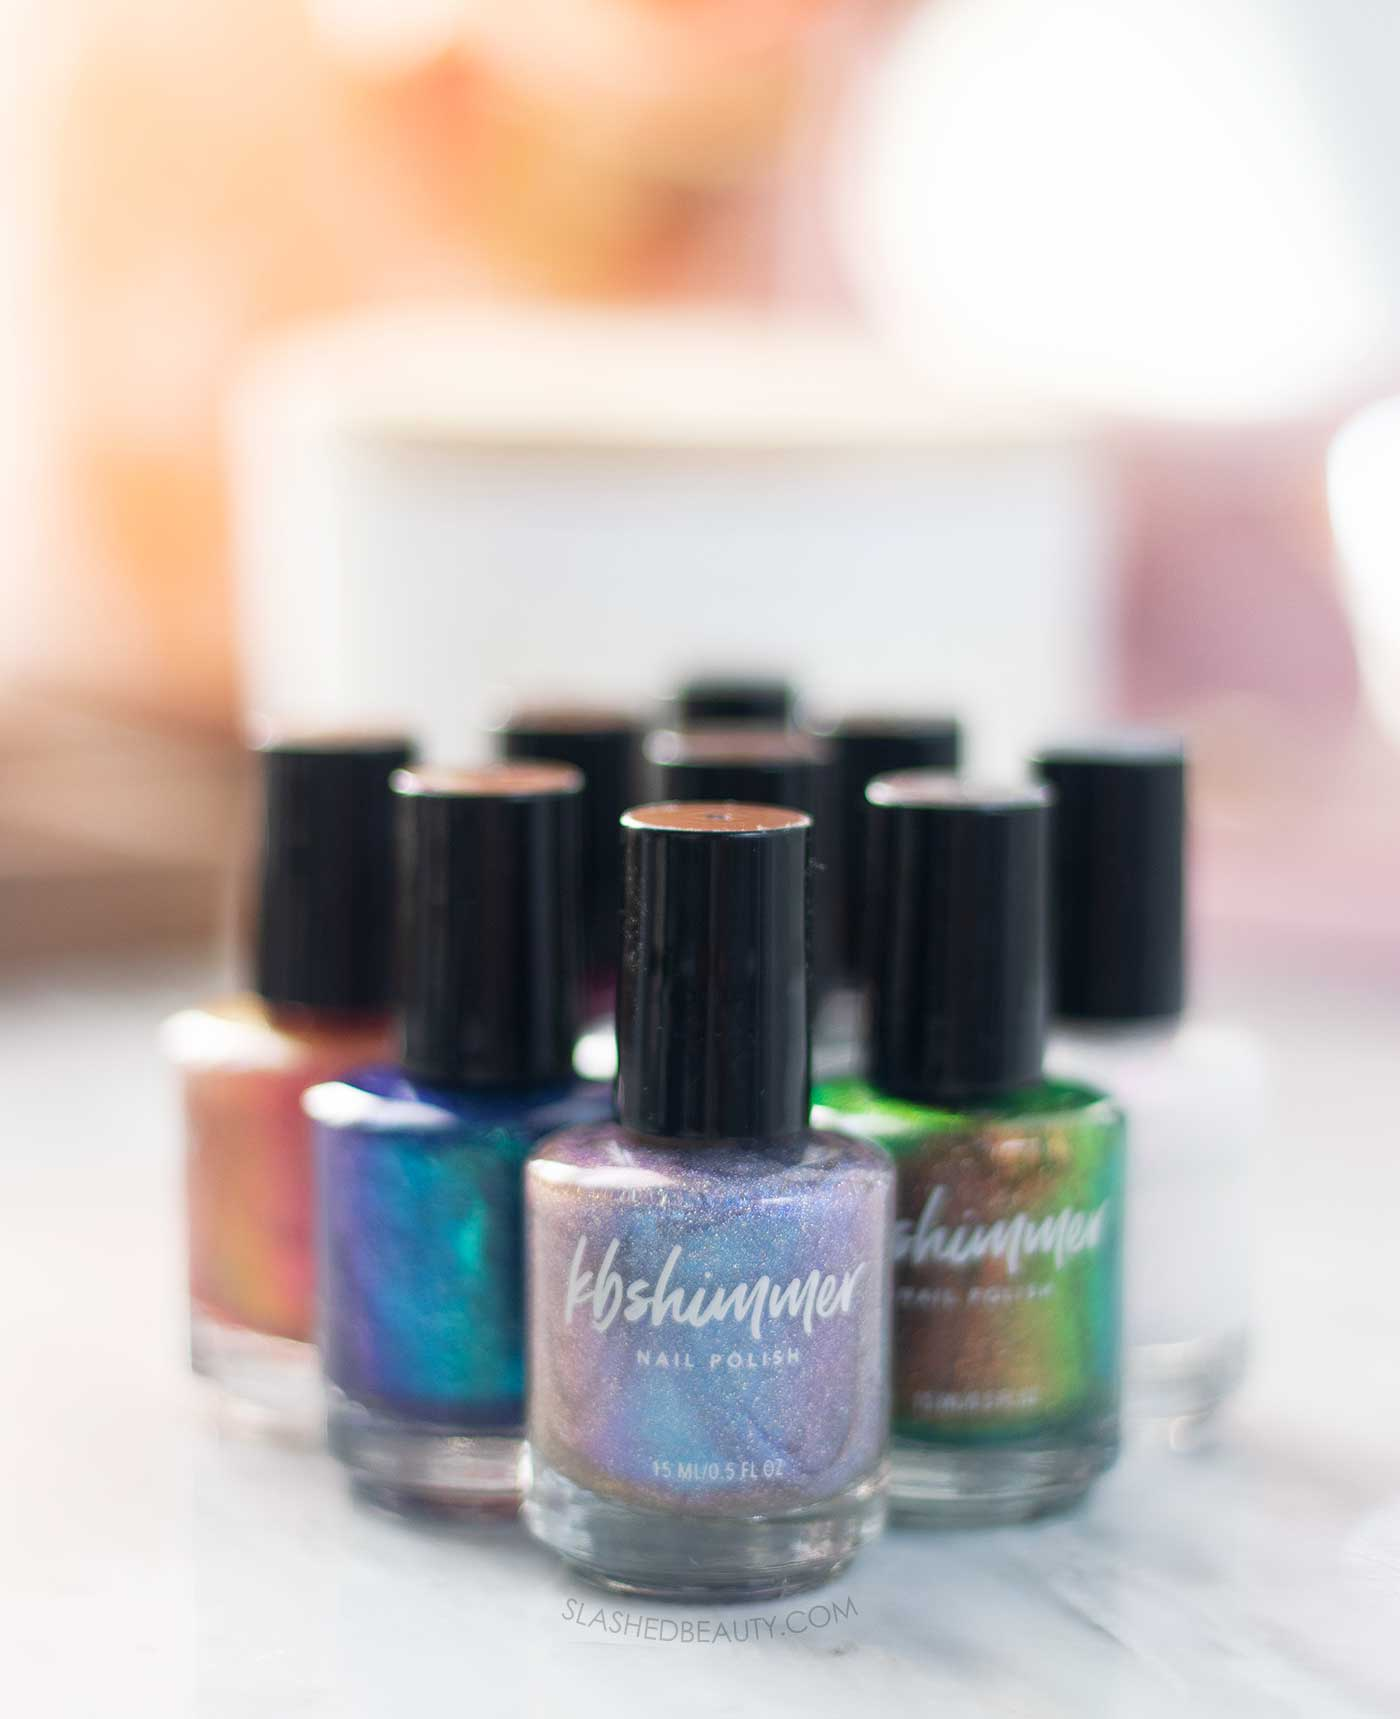 KBShimmer License to Chill Nail Polish Collection Swatches & Review | Slashed Beauty